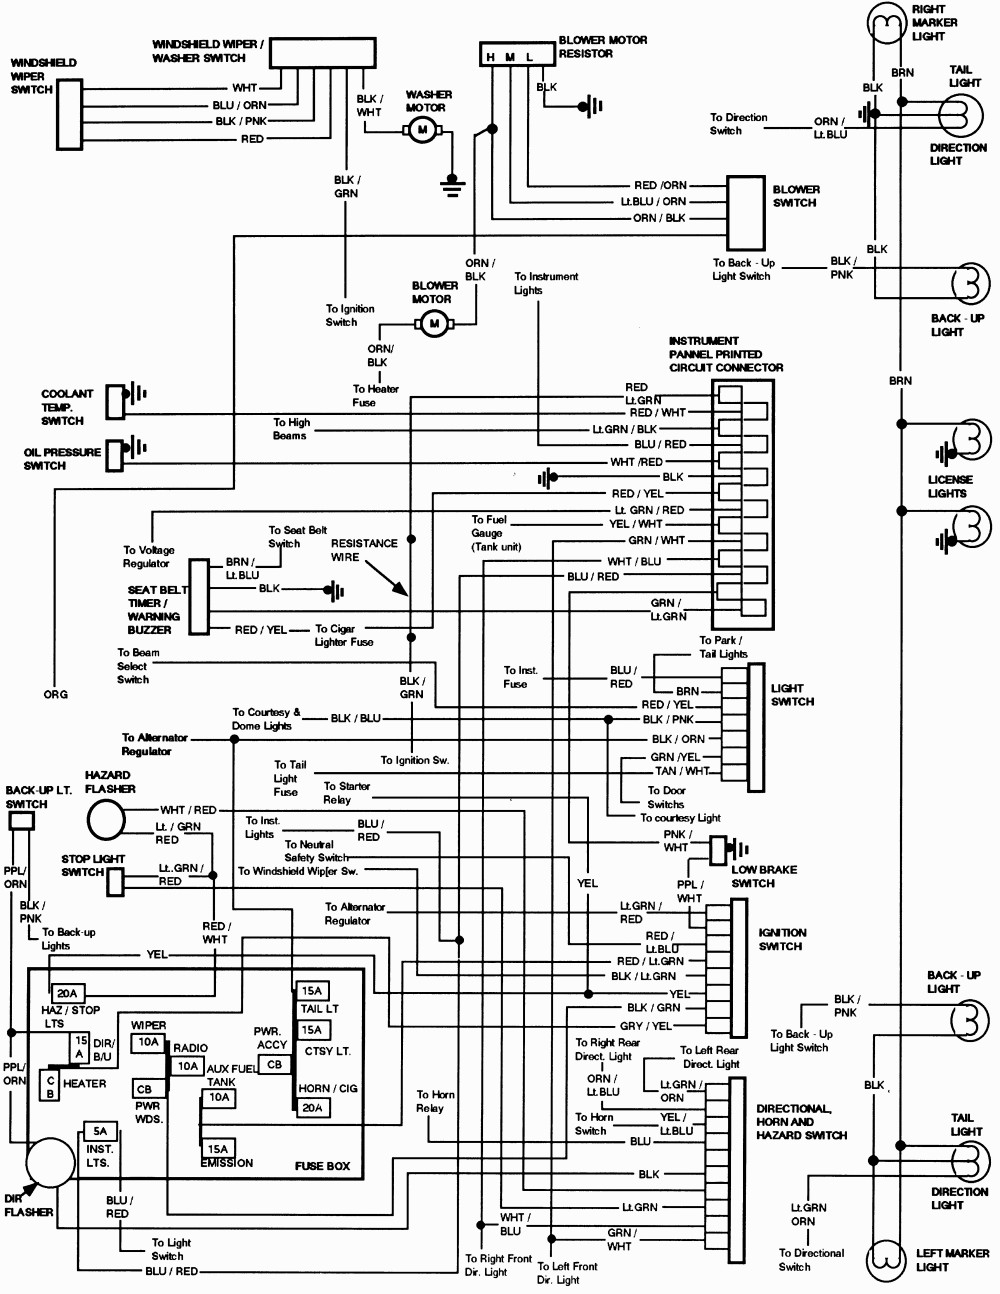 89 Mustang Radio Wiring Diagram Free Wiring Diagram